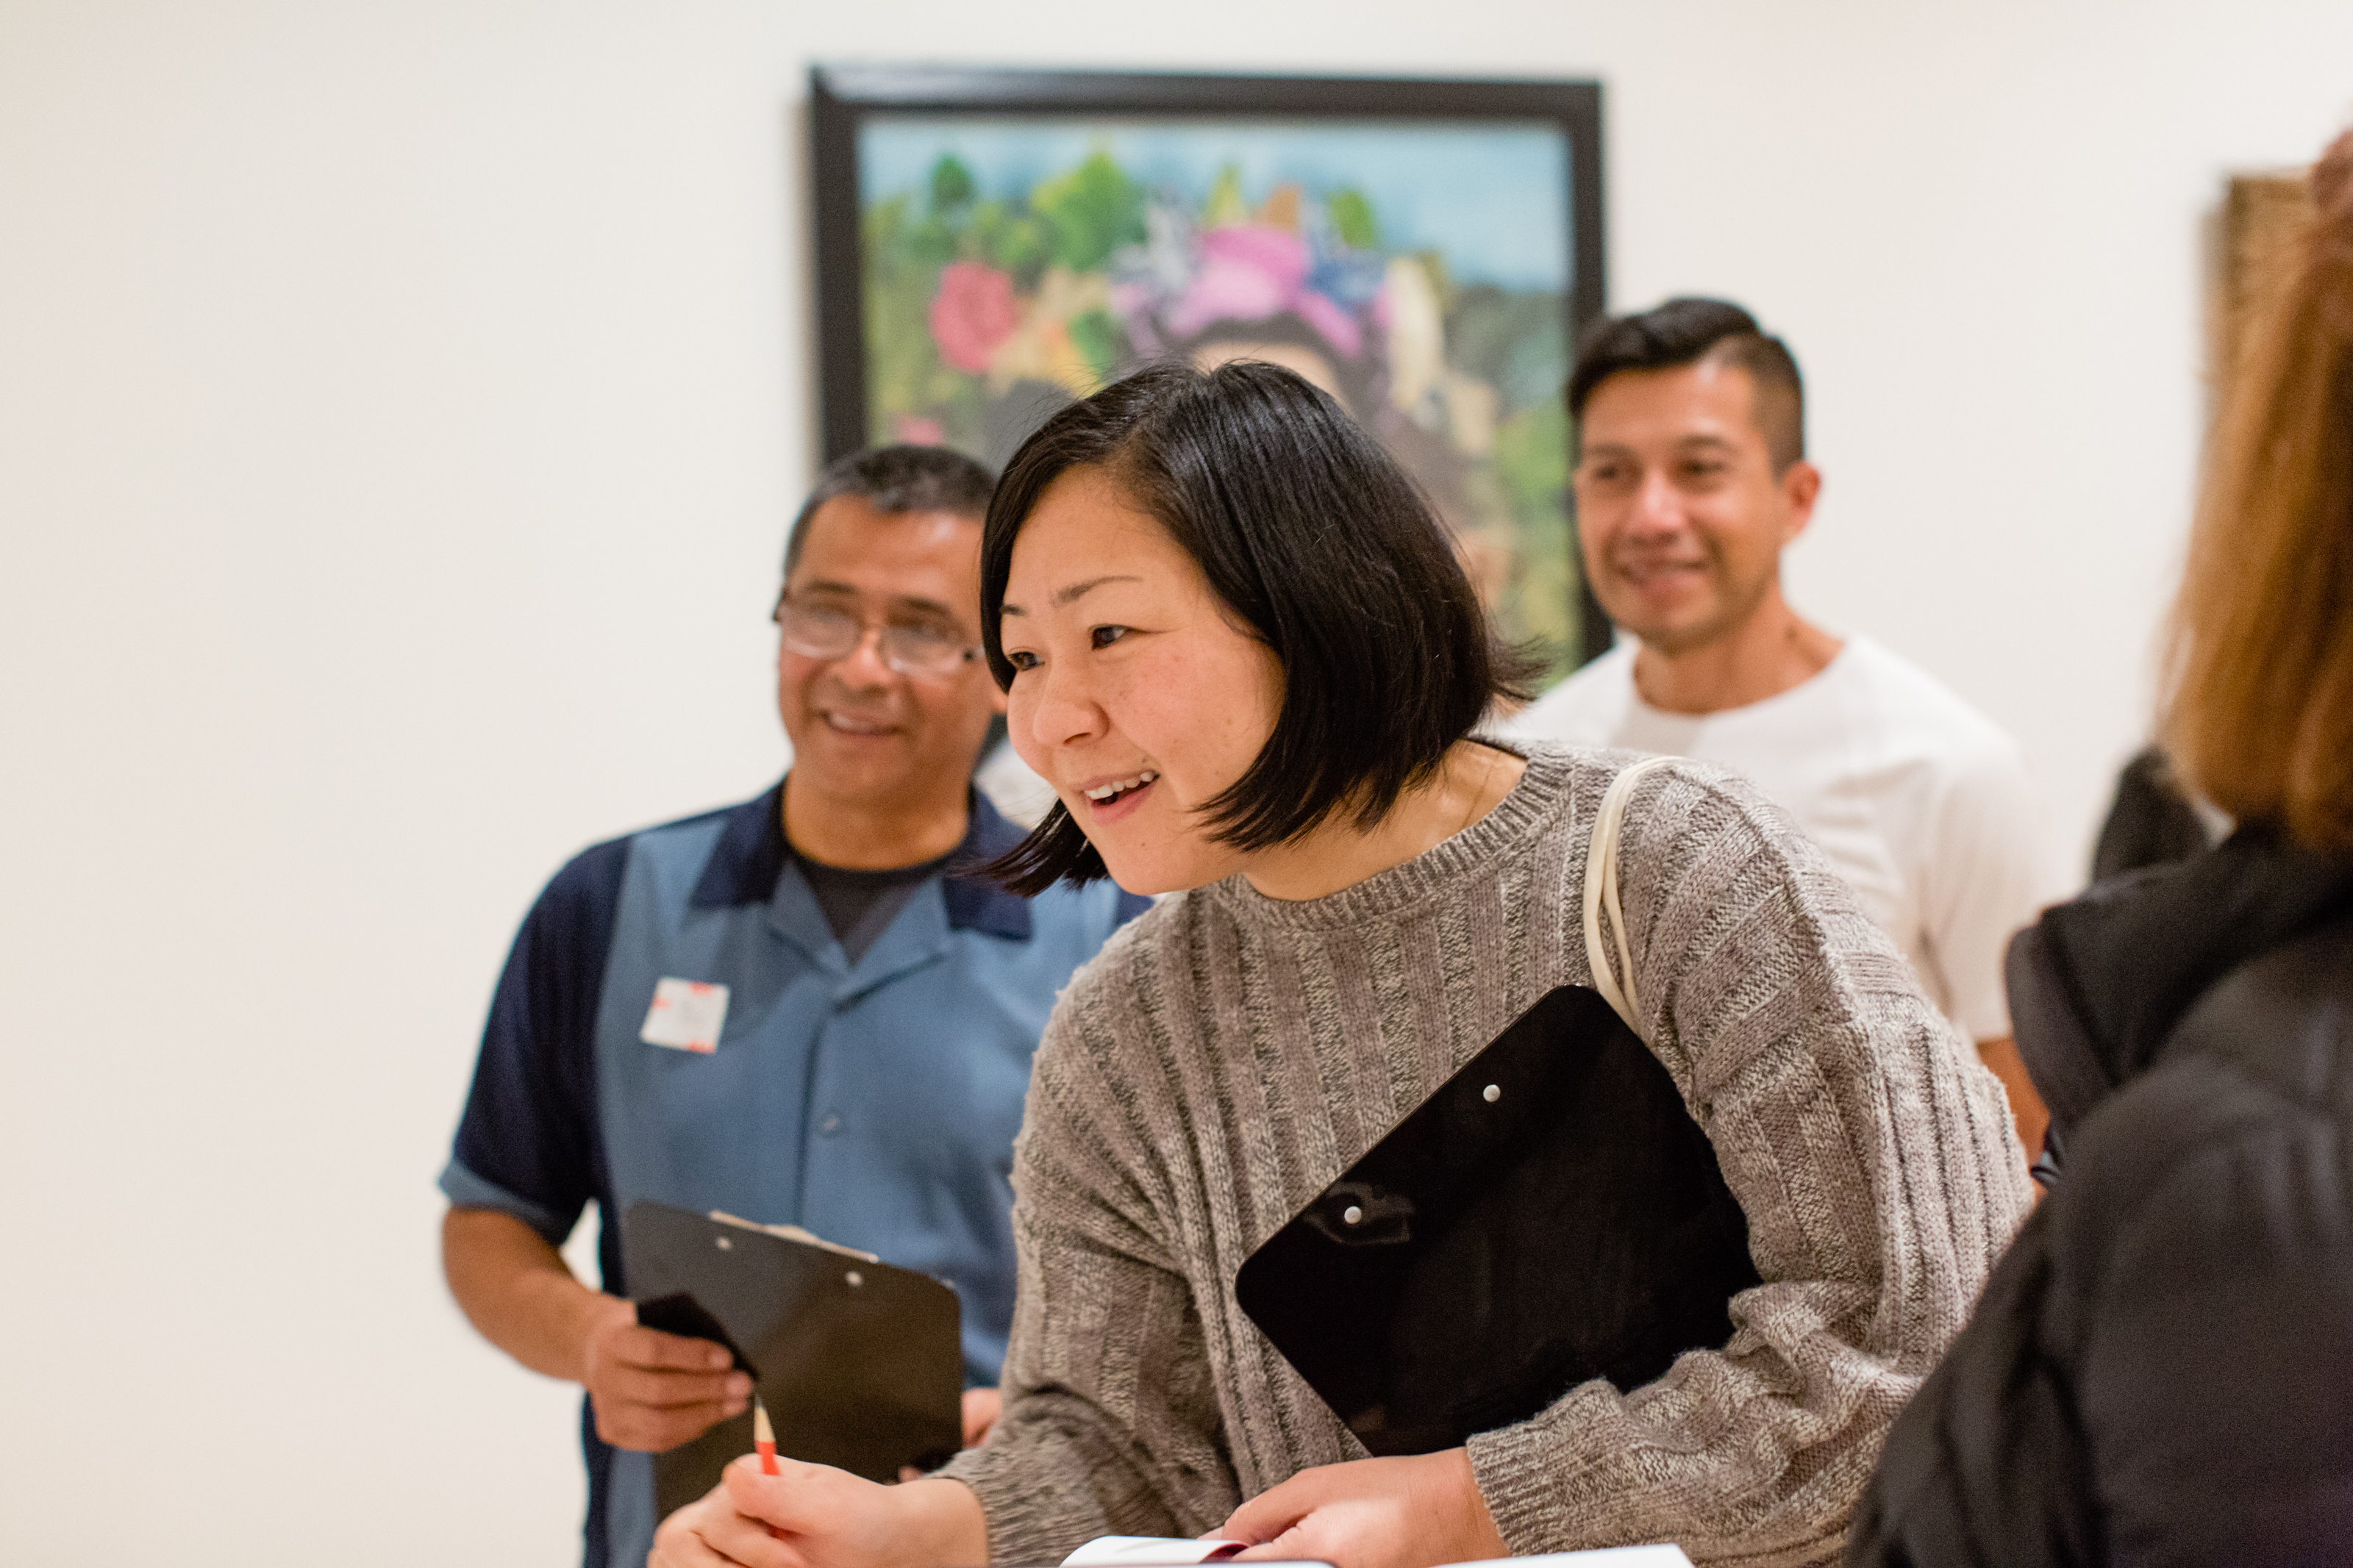 A smiling woman looks intently at something out of the frame in a gallery